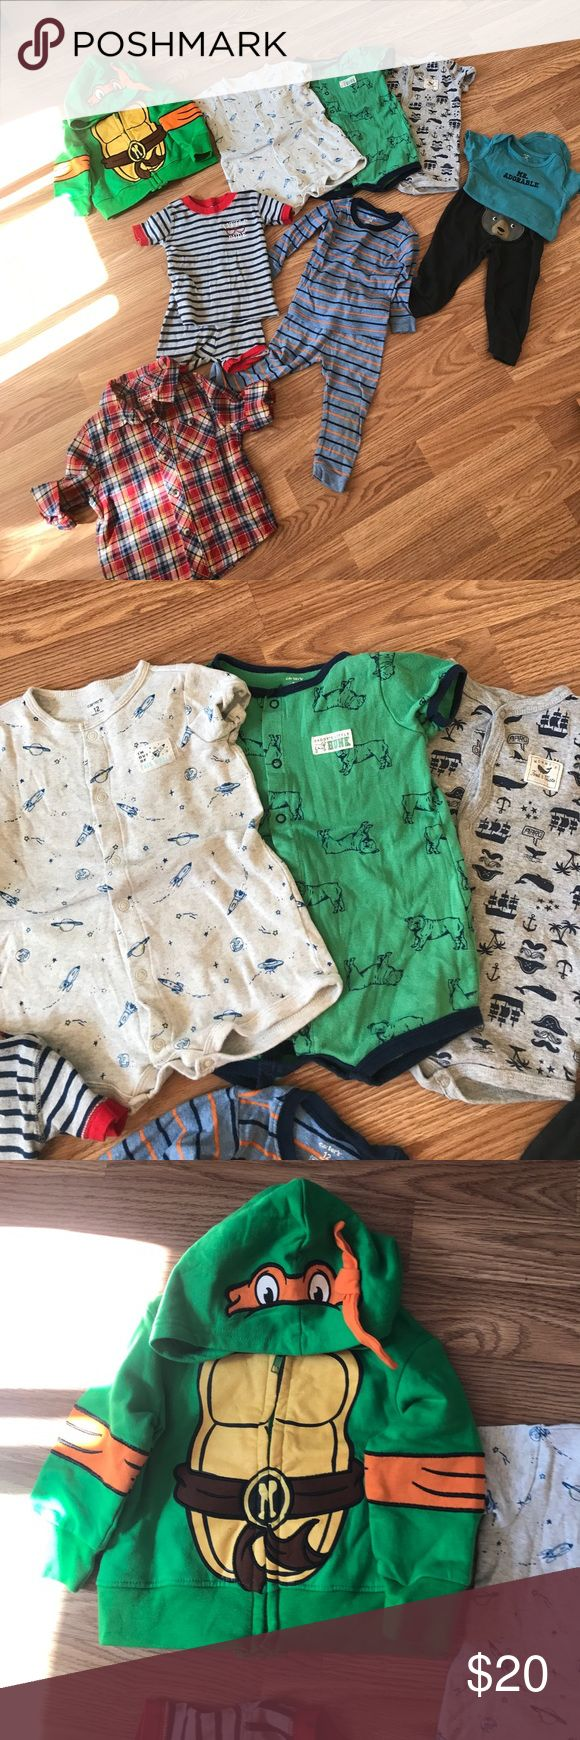 12M baby boy bundle 11 pieces. Great condition. All carters 3 rompers matching onesie with pants 2 pajama sets and Nickelodeon ninja turtle jacket and Cherokee plaid shirt Matching Sets